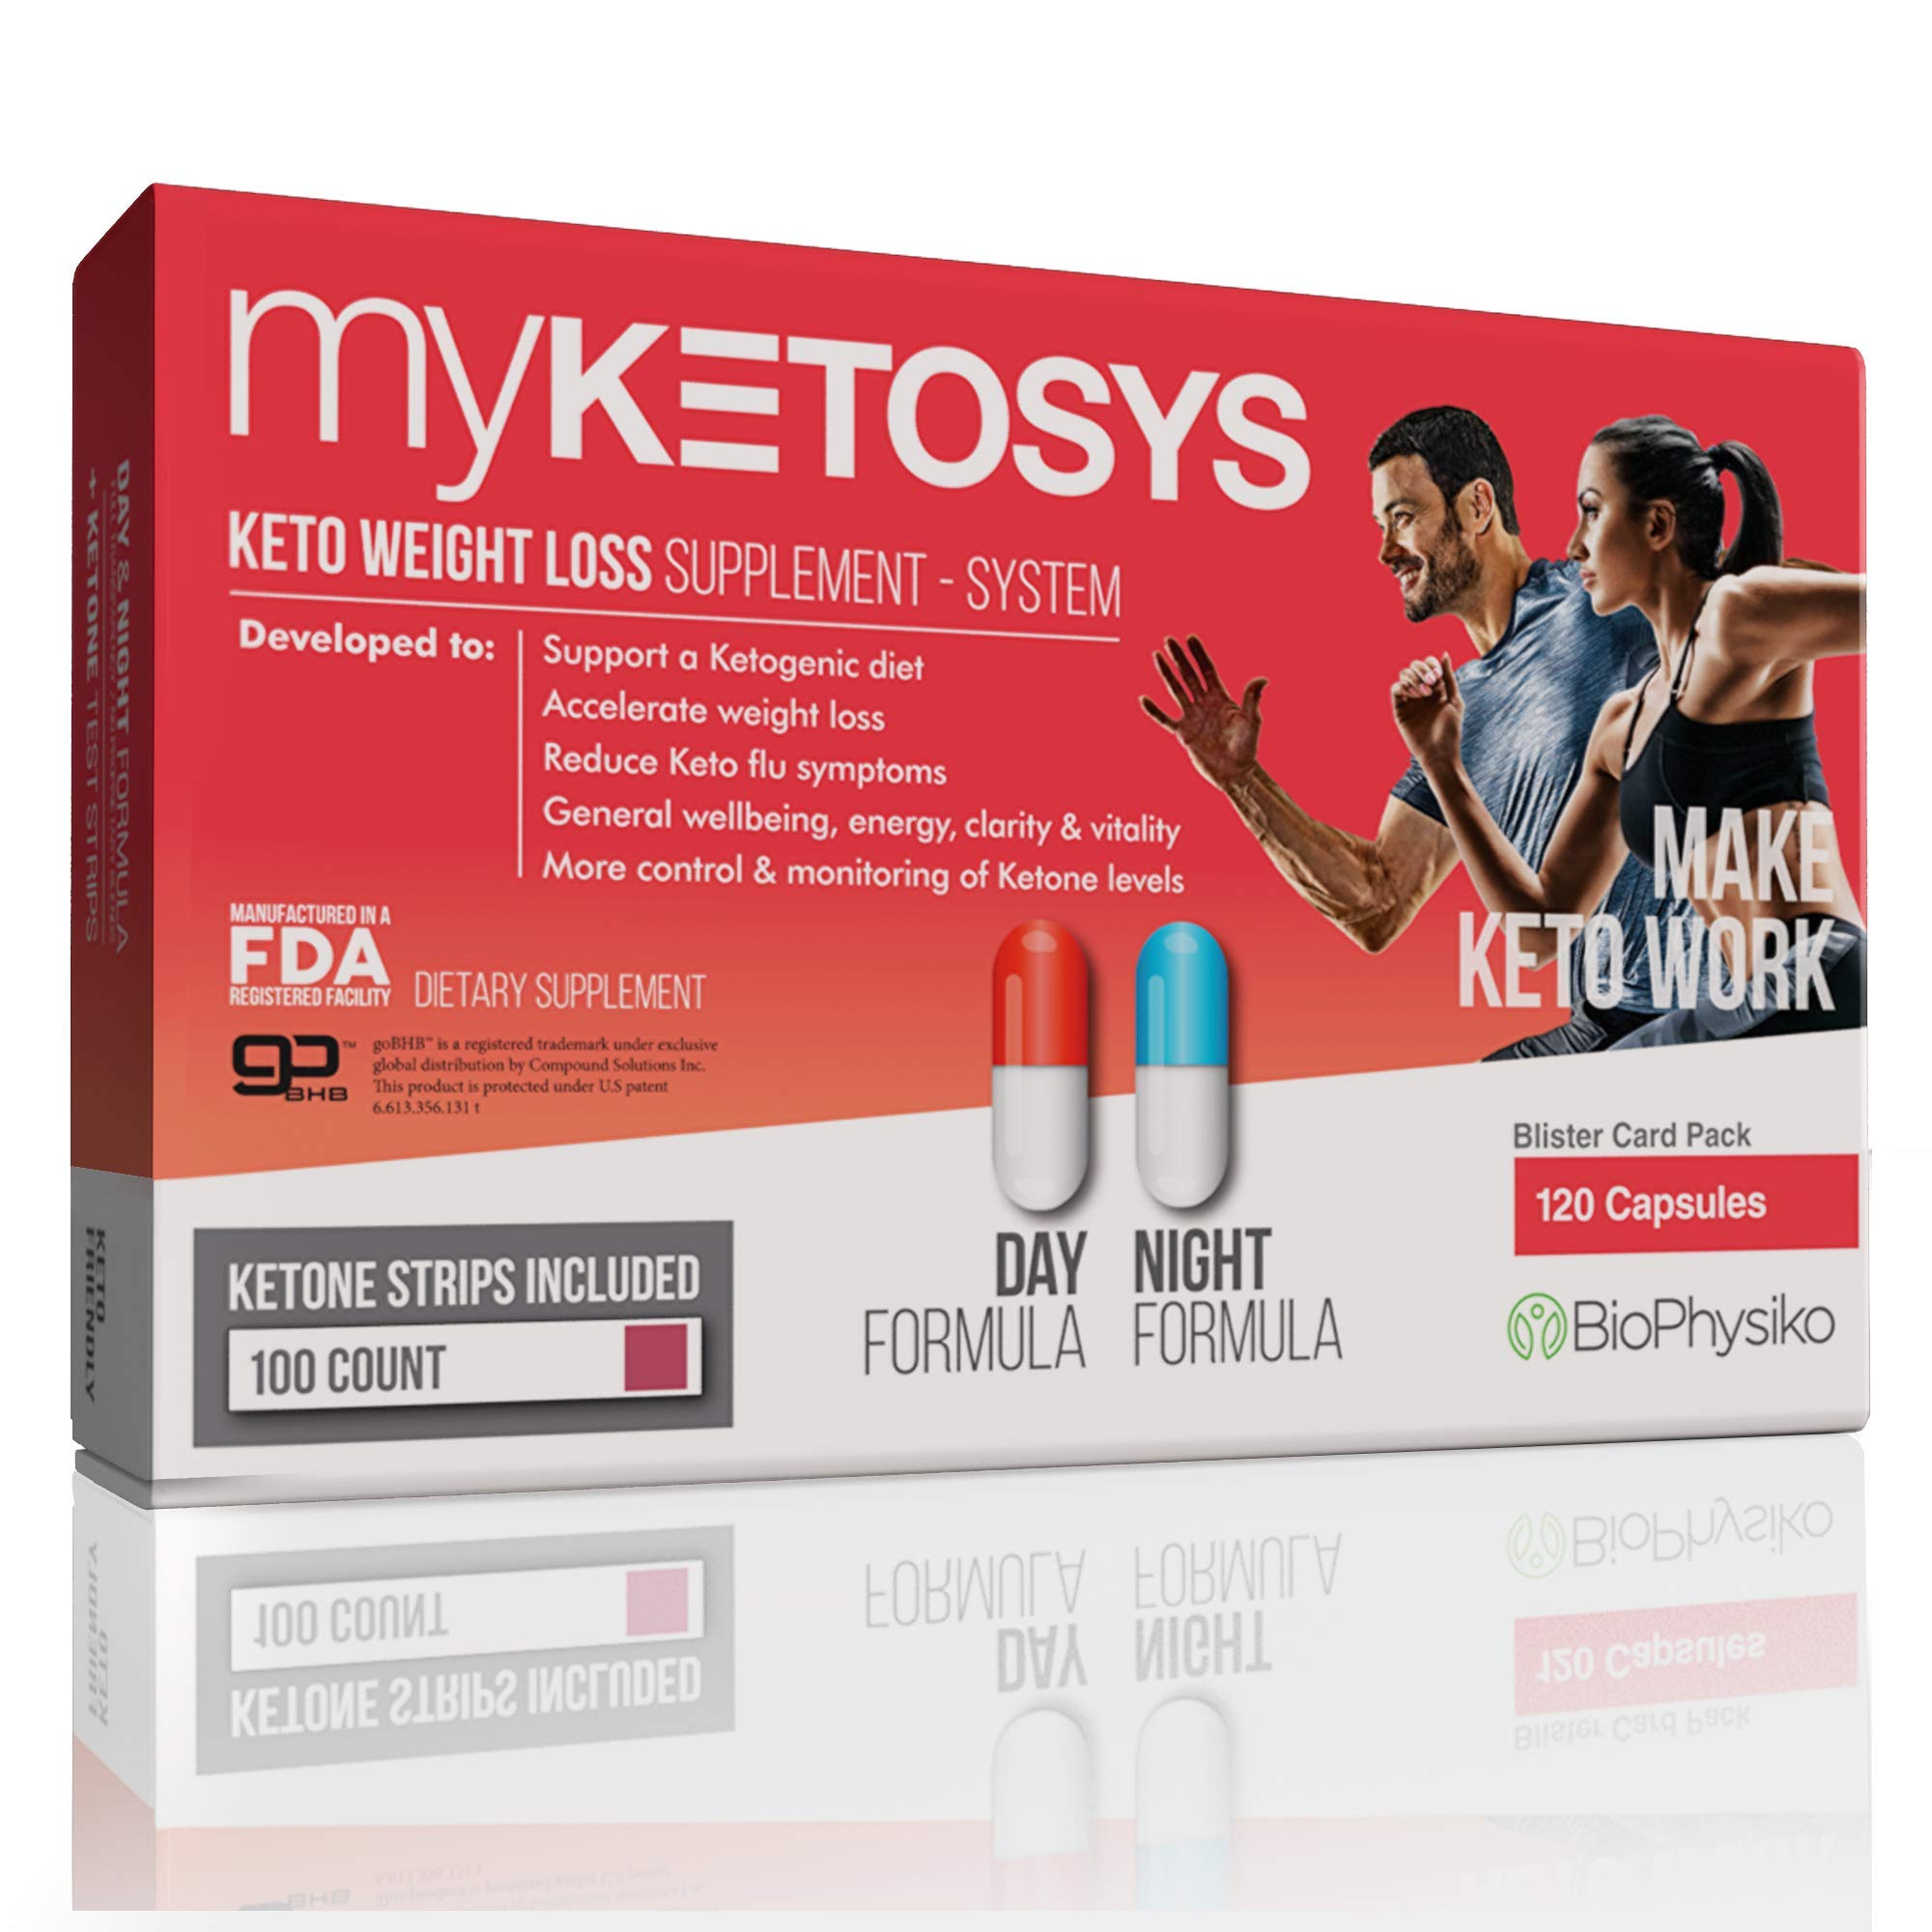 MYKETOSYS | 2019 Best Keto Weight Loss Pills for Women & Men. The Only Day & Night Formula Keto Fat Burner Pills plus Ketone Strips. A Complete Keto Supplement for Ketosis with GoBHB Exogenous Ketones by MYKETOSYS